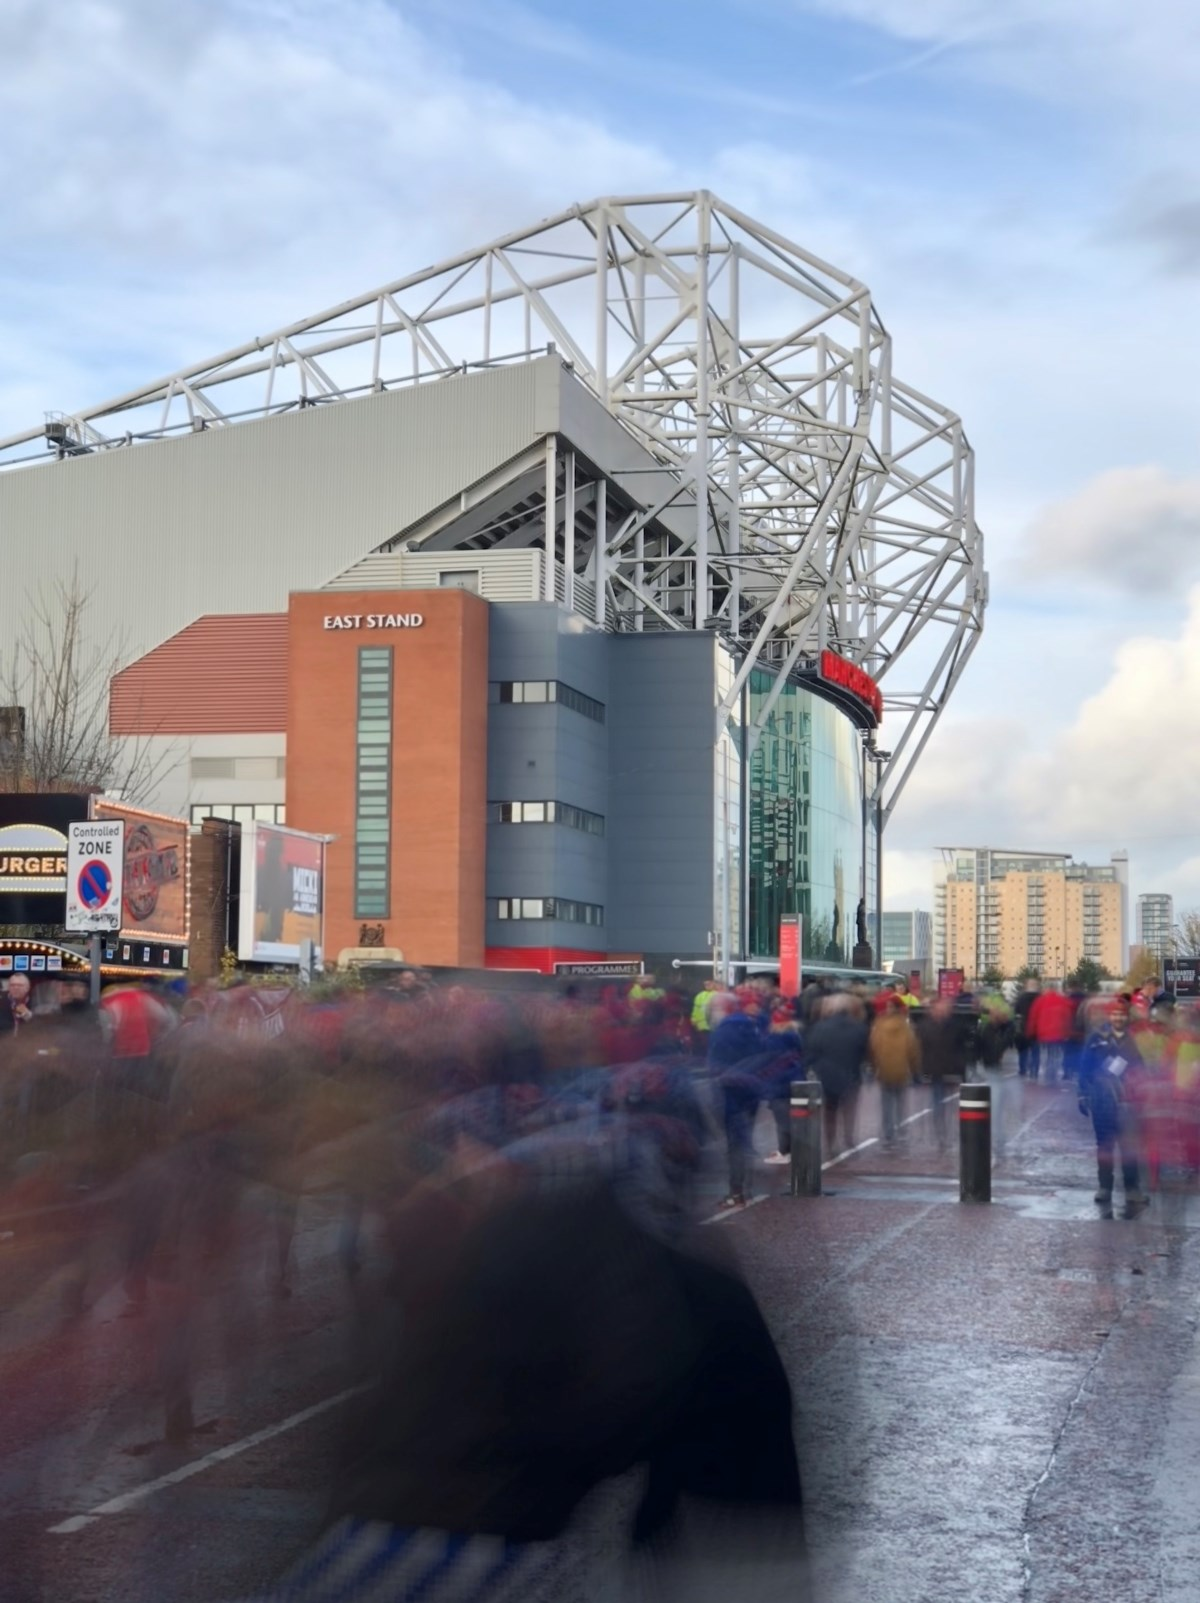 Crowds heading to Old Trafford